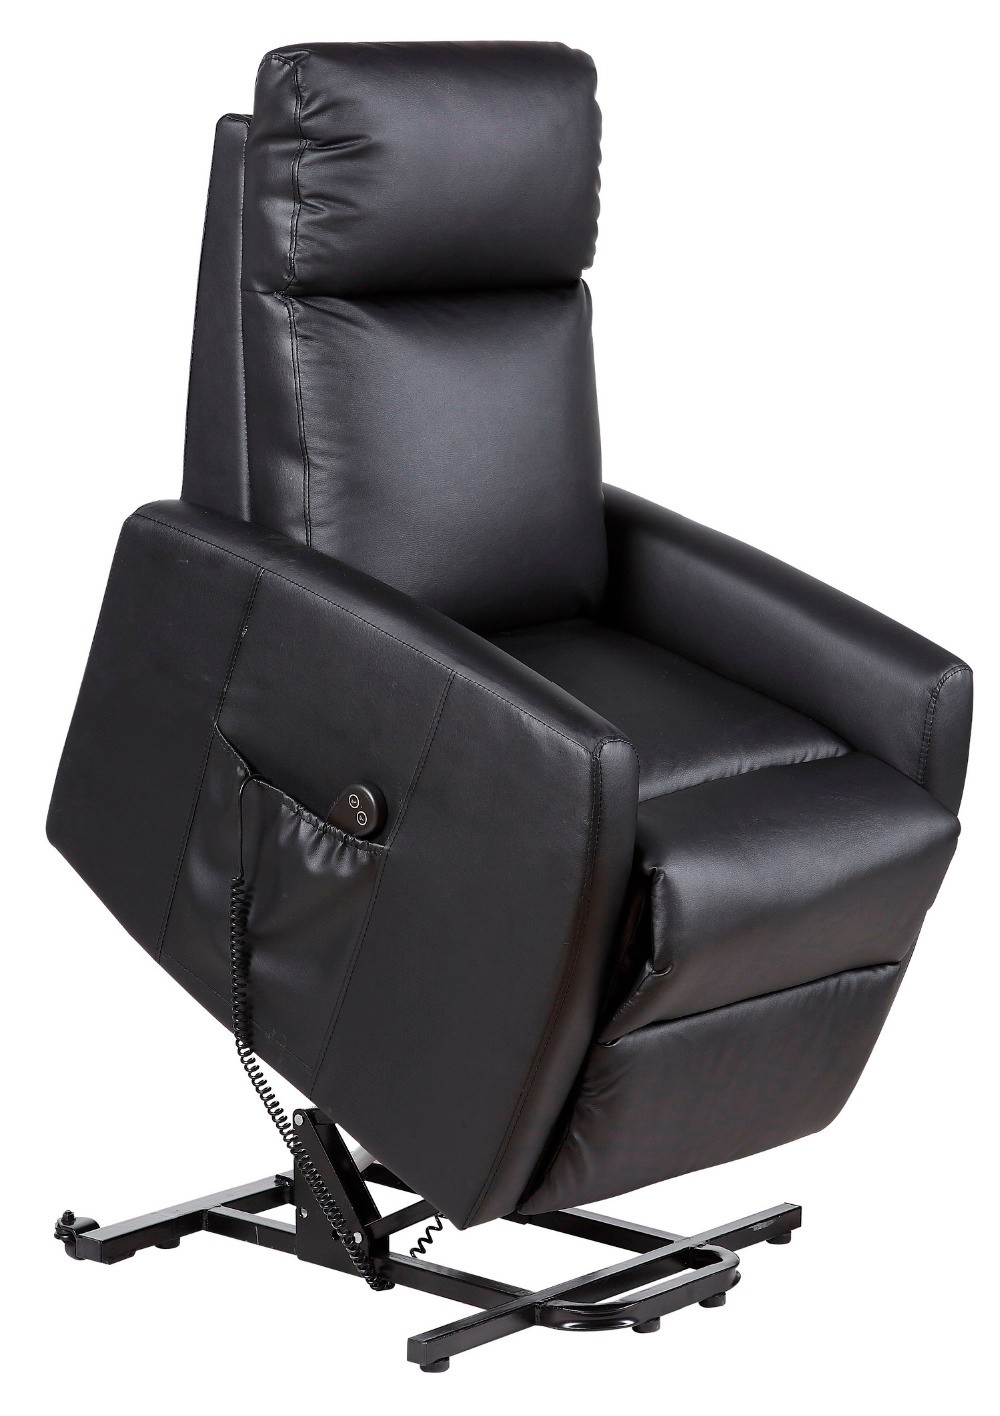 HY-8906 Customized Okin Motor Electric Massage Recliner Chair Lift Chair  sc 1 st  Alibaba : okin recliner chair - islam-shia.org